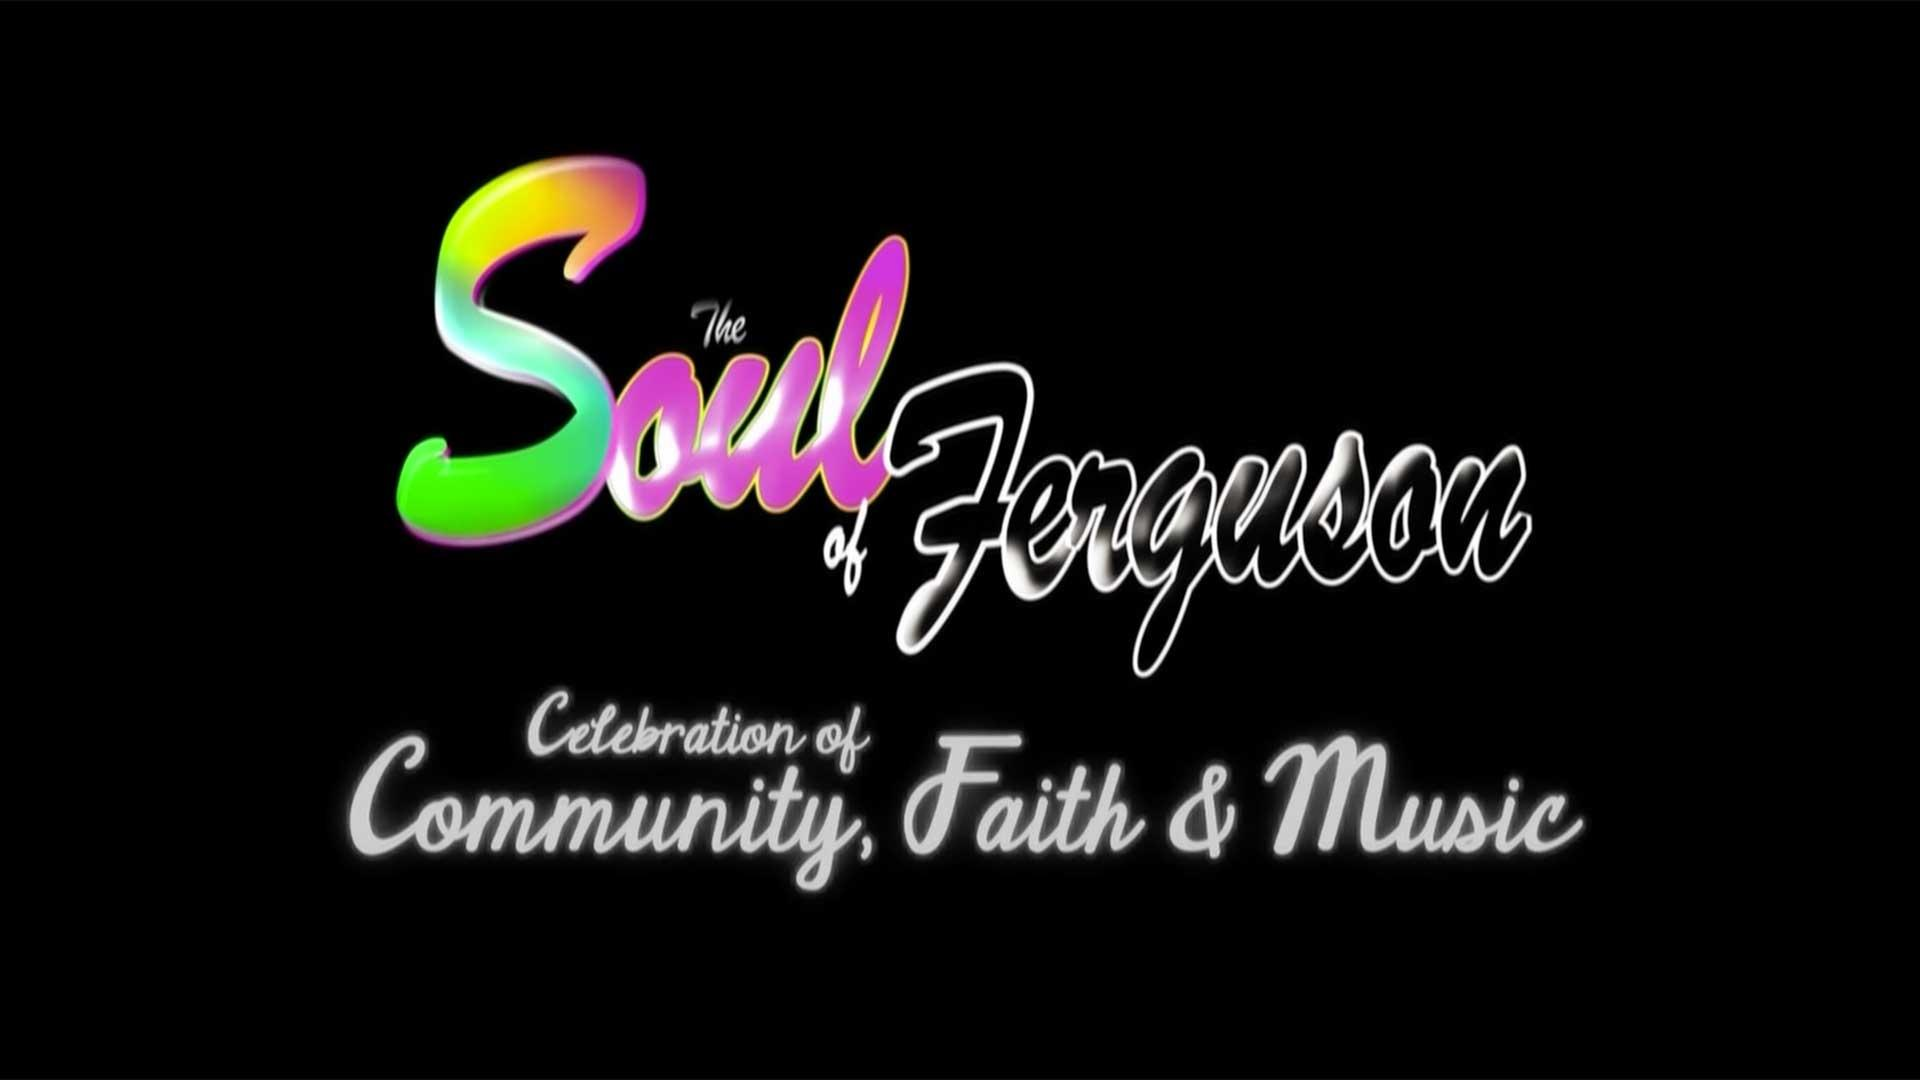 Soul of Ferguson